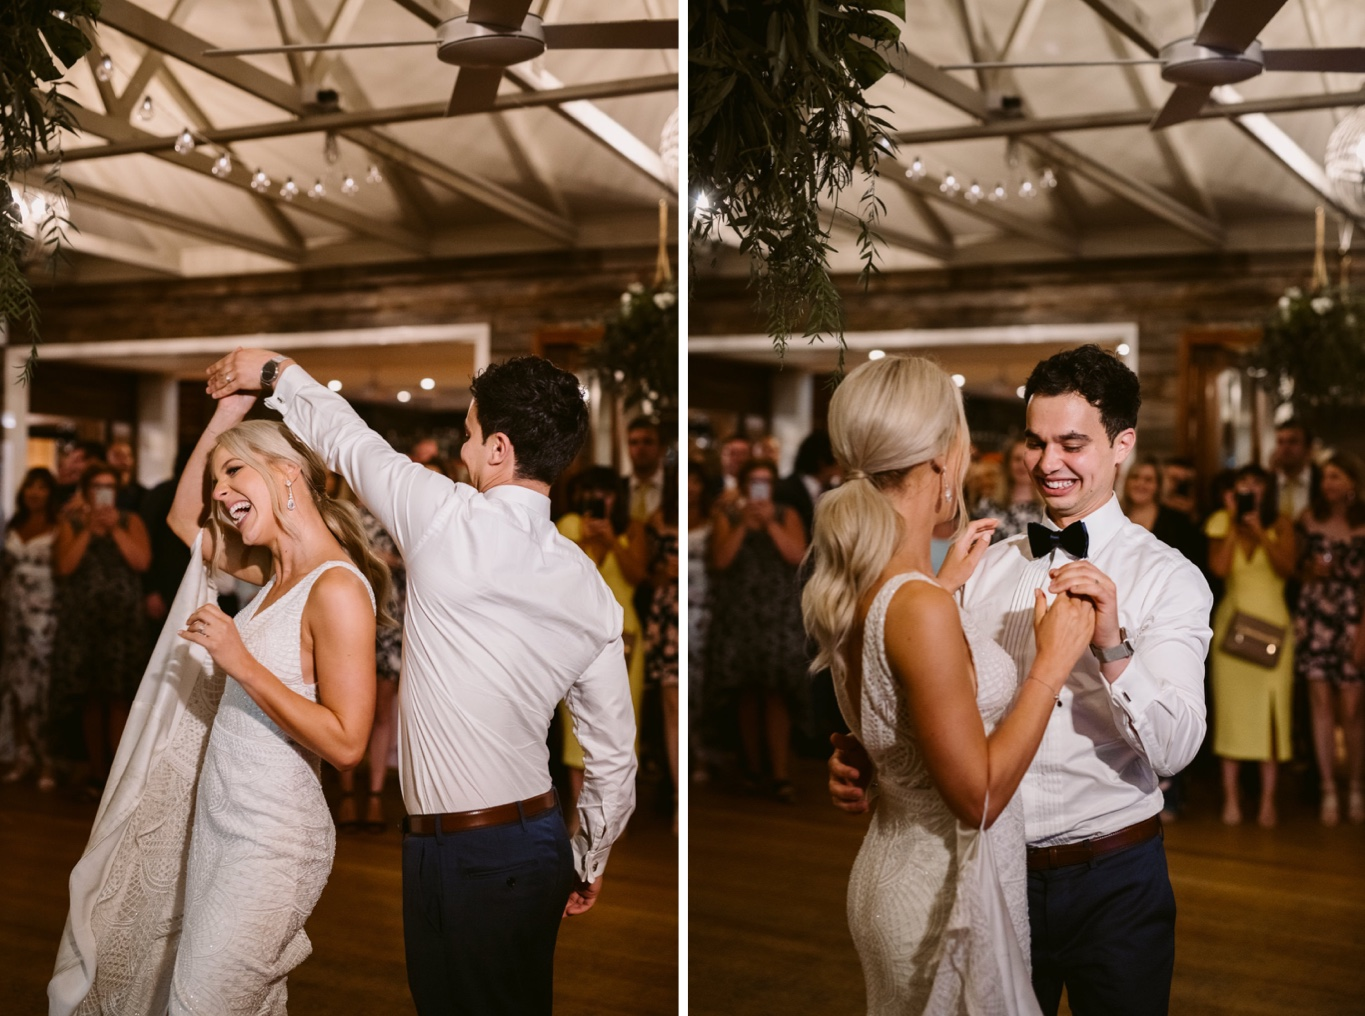 Immerse Yarra Valley Winery Wedding Photography122.jpg